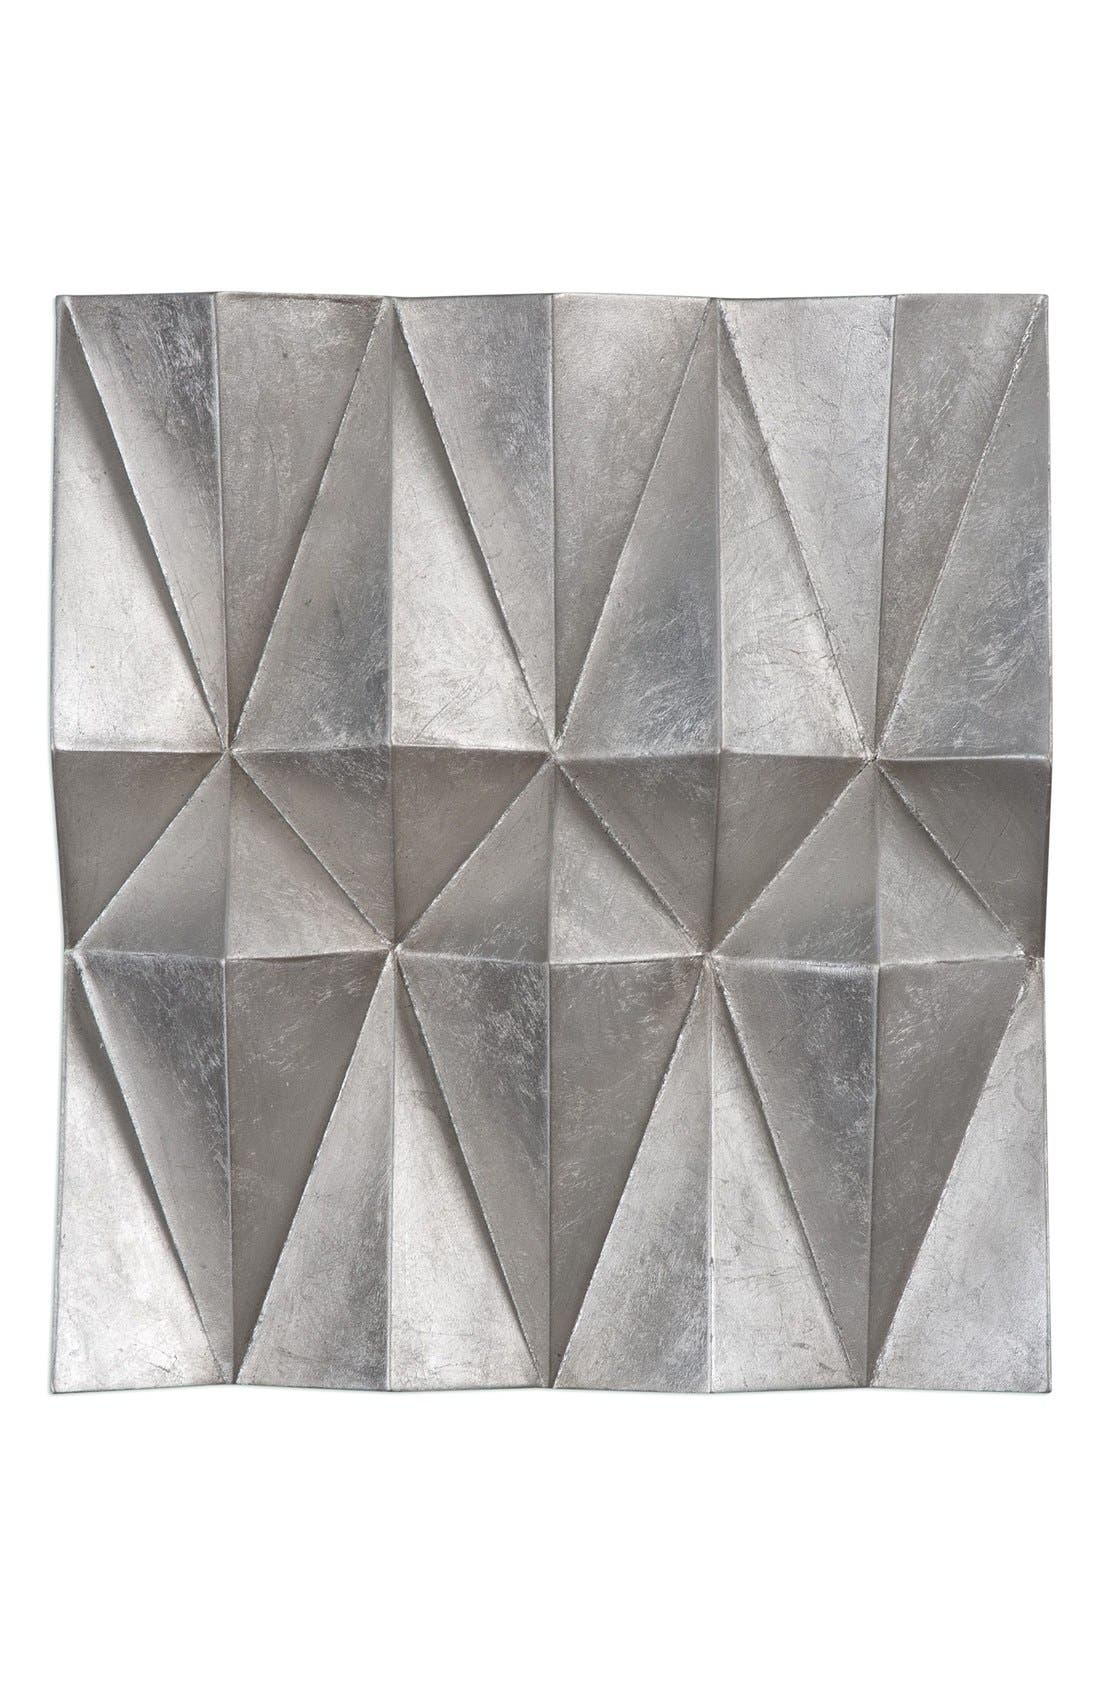 Main Image - Uttermost Faceted Wall Art (Set of 3)